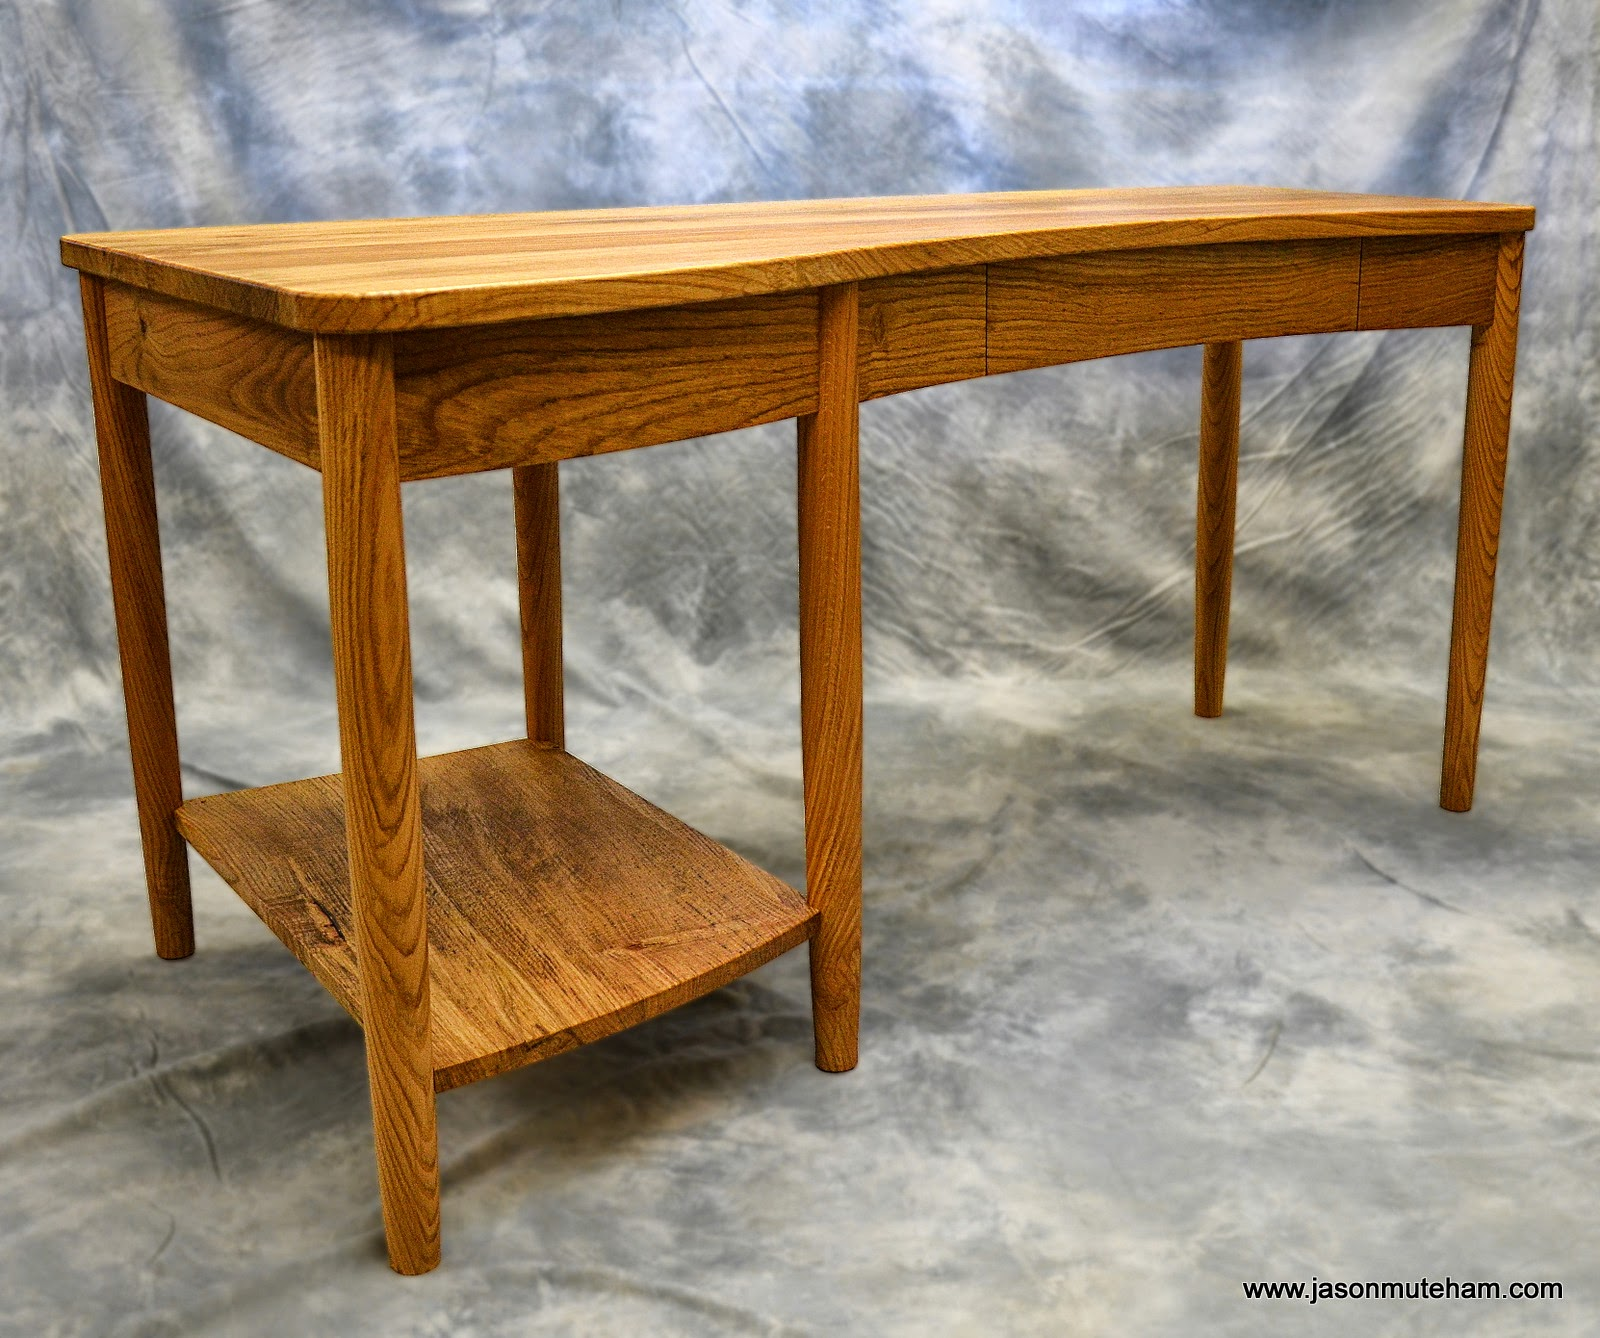 Bespkoke Curvy Oak Desk